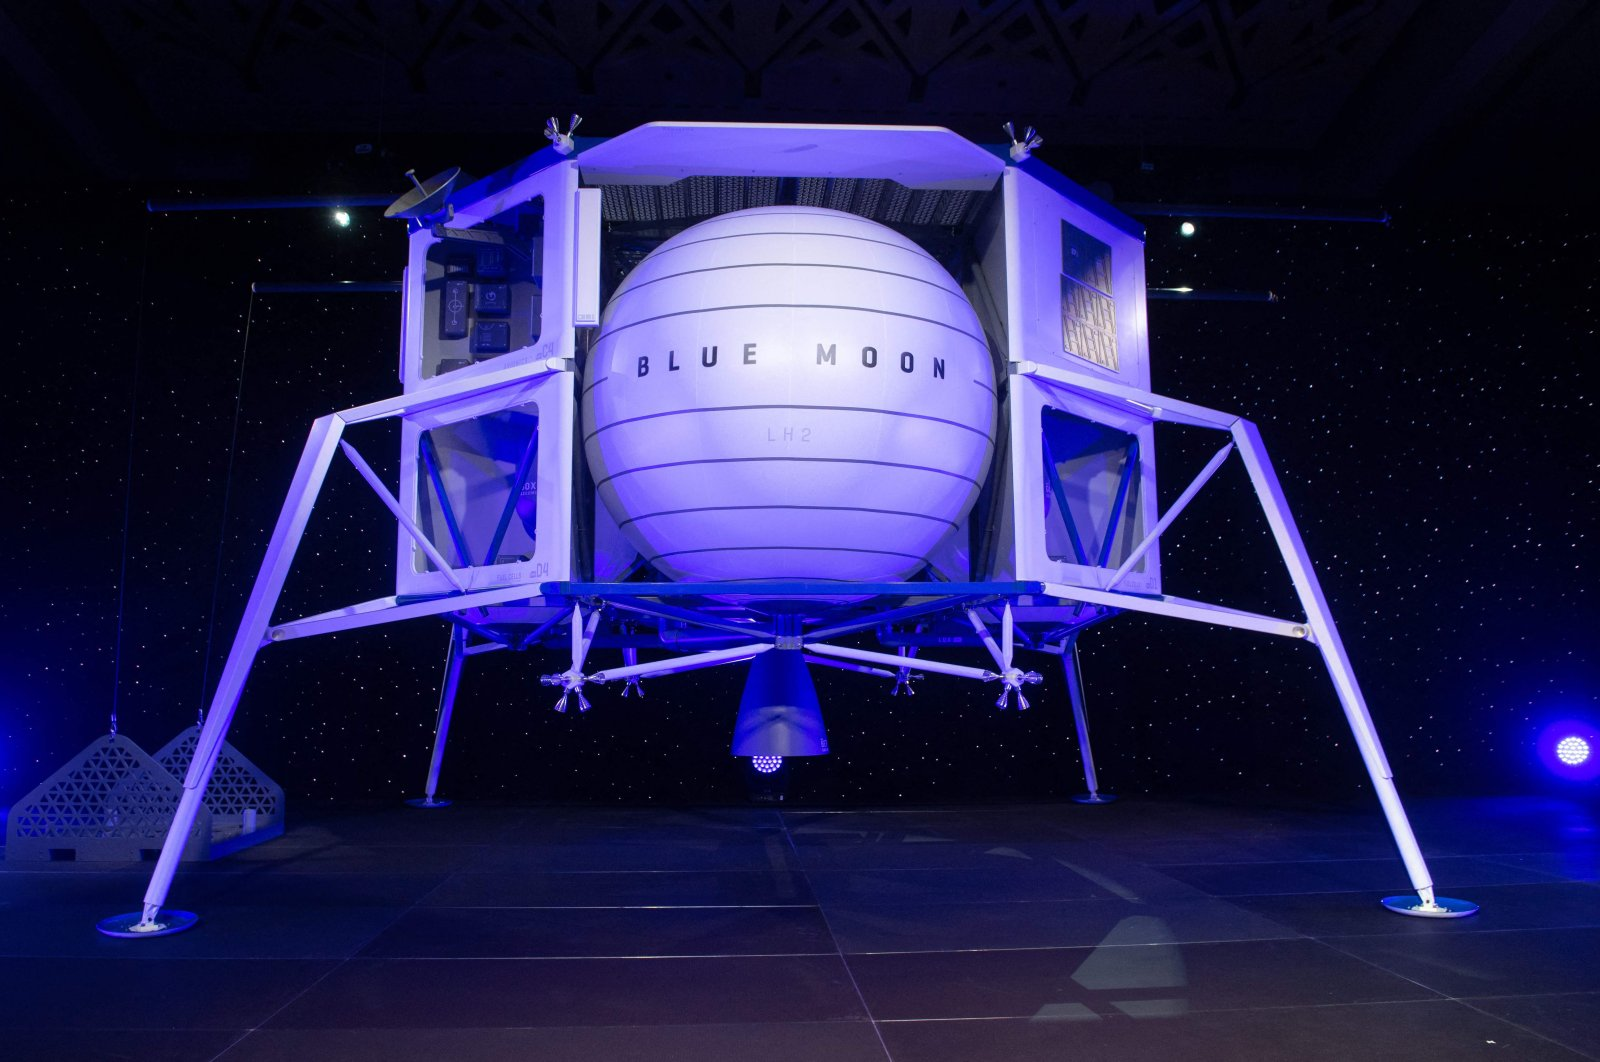 Blue Moon, a lunar landing vehicle, is seen after being announced by Amazon CEO Jeff Bezos during a Blue Origin event in Washington, D.C., May 9, 2019. (AFP Photo)